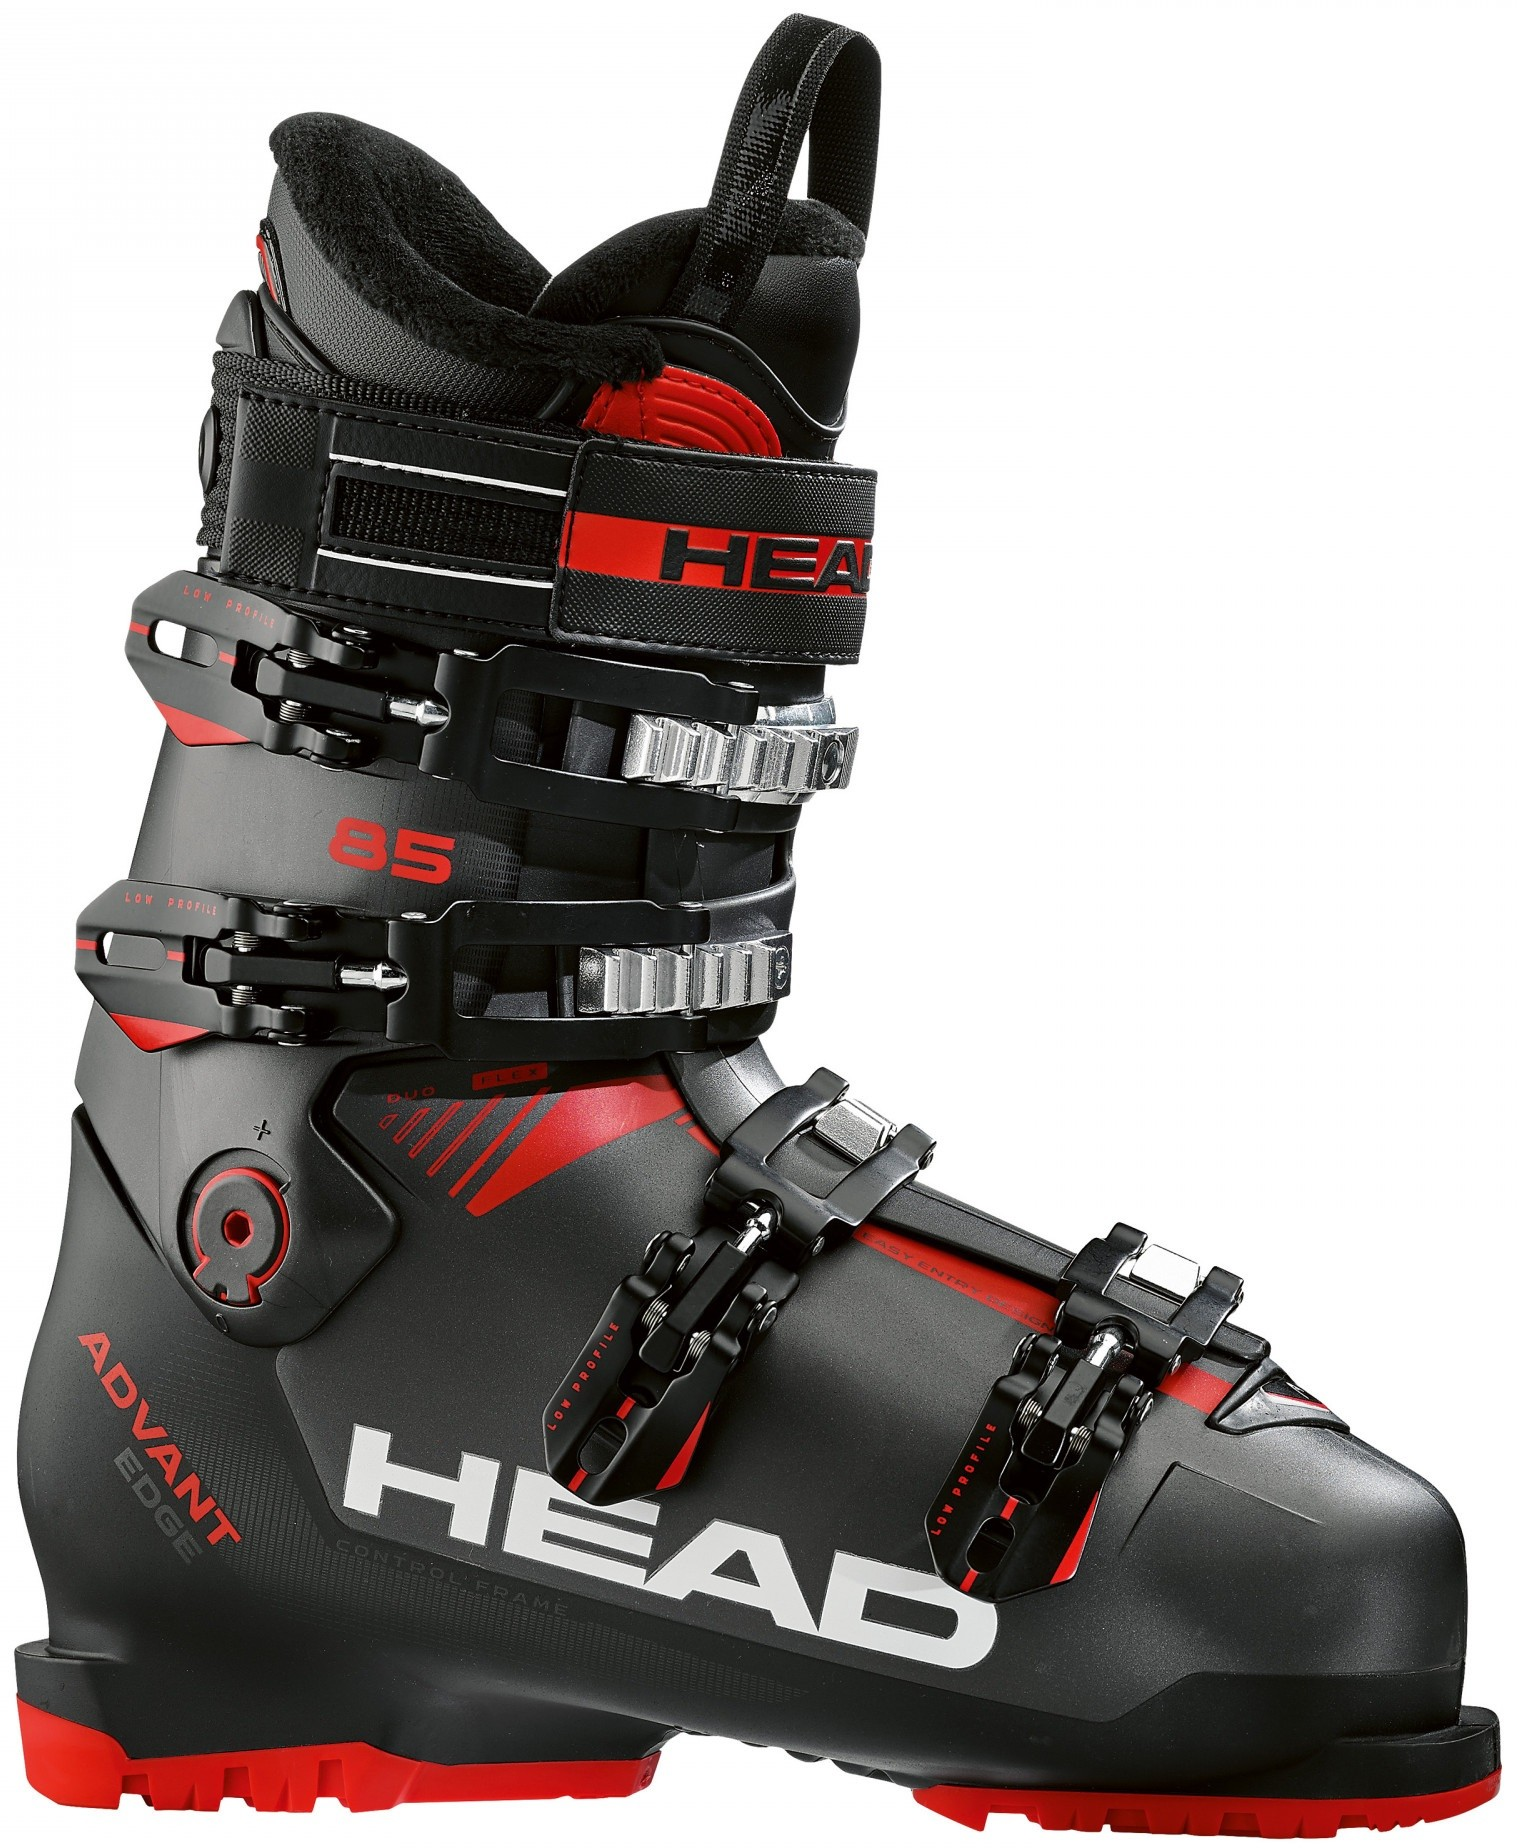 Ботинки Head Advant Edge 85 (2019/2020) Anthracite/Black/Red 28.5 см